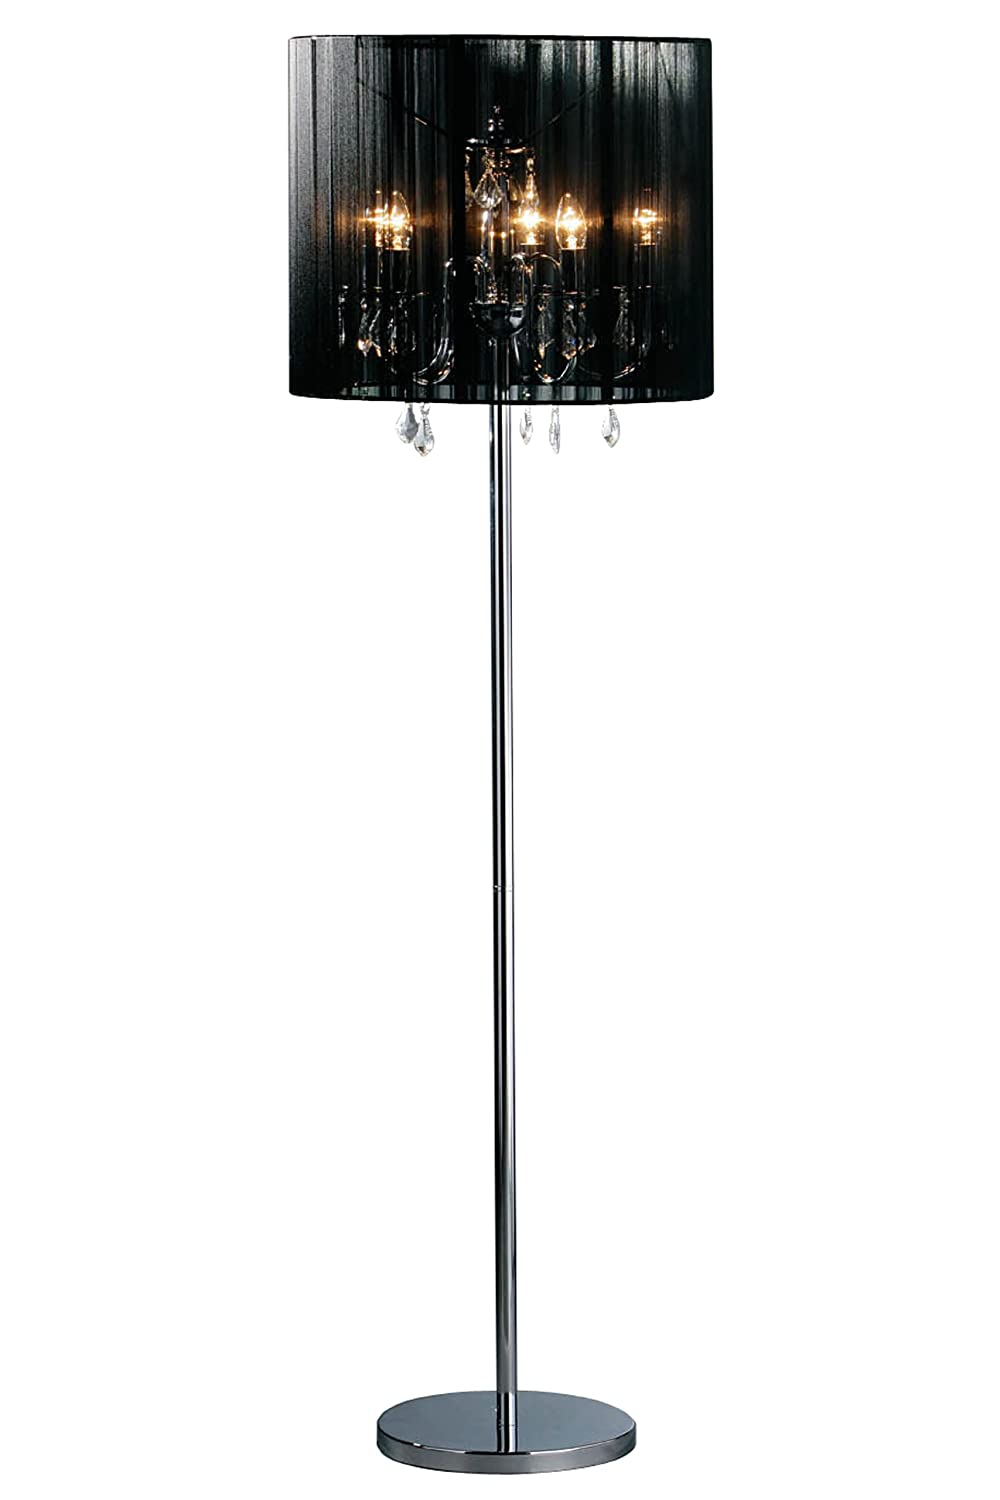 Premier Housewares Chandelier Table Lamp With Fabric Shade   Black:  Amazon.co.uk: Lighting